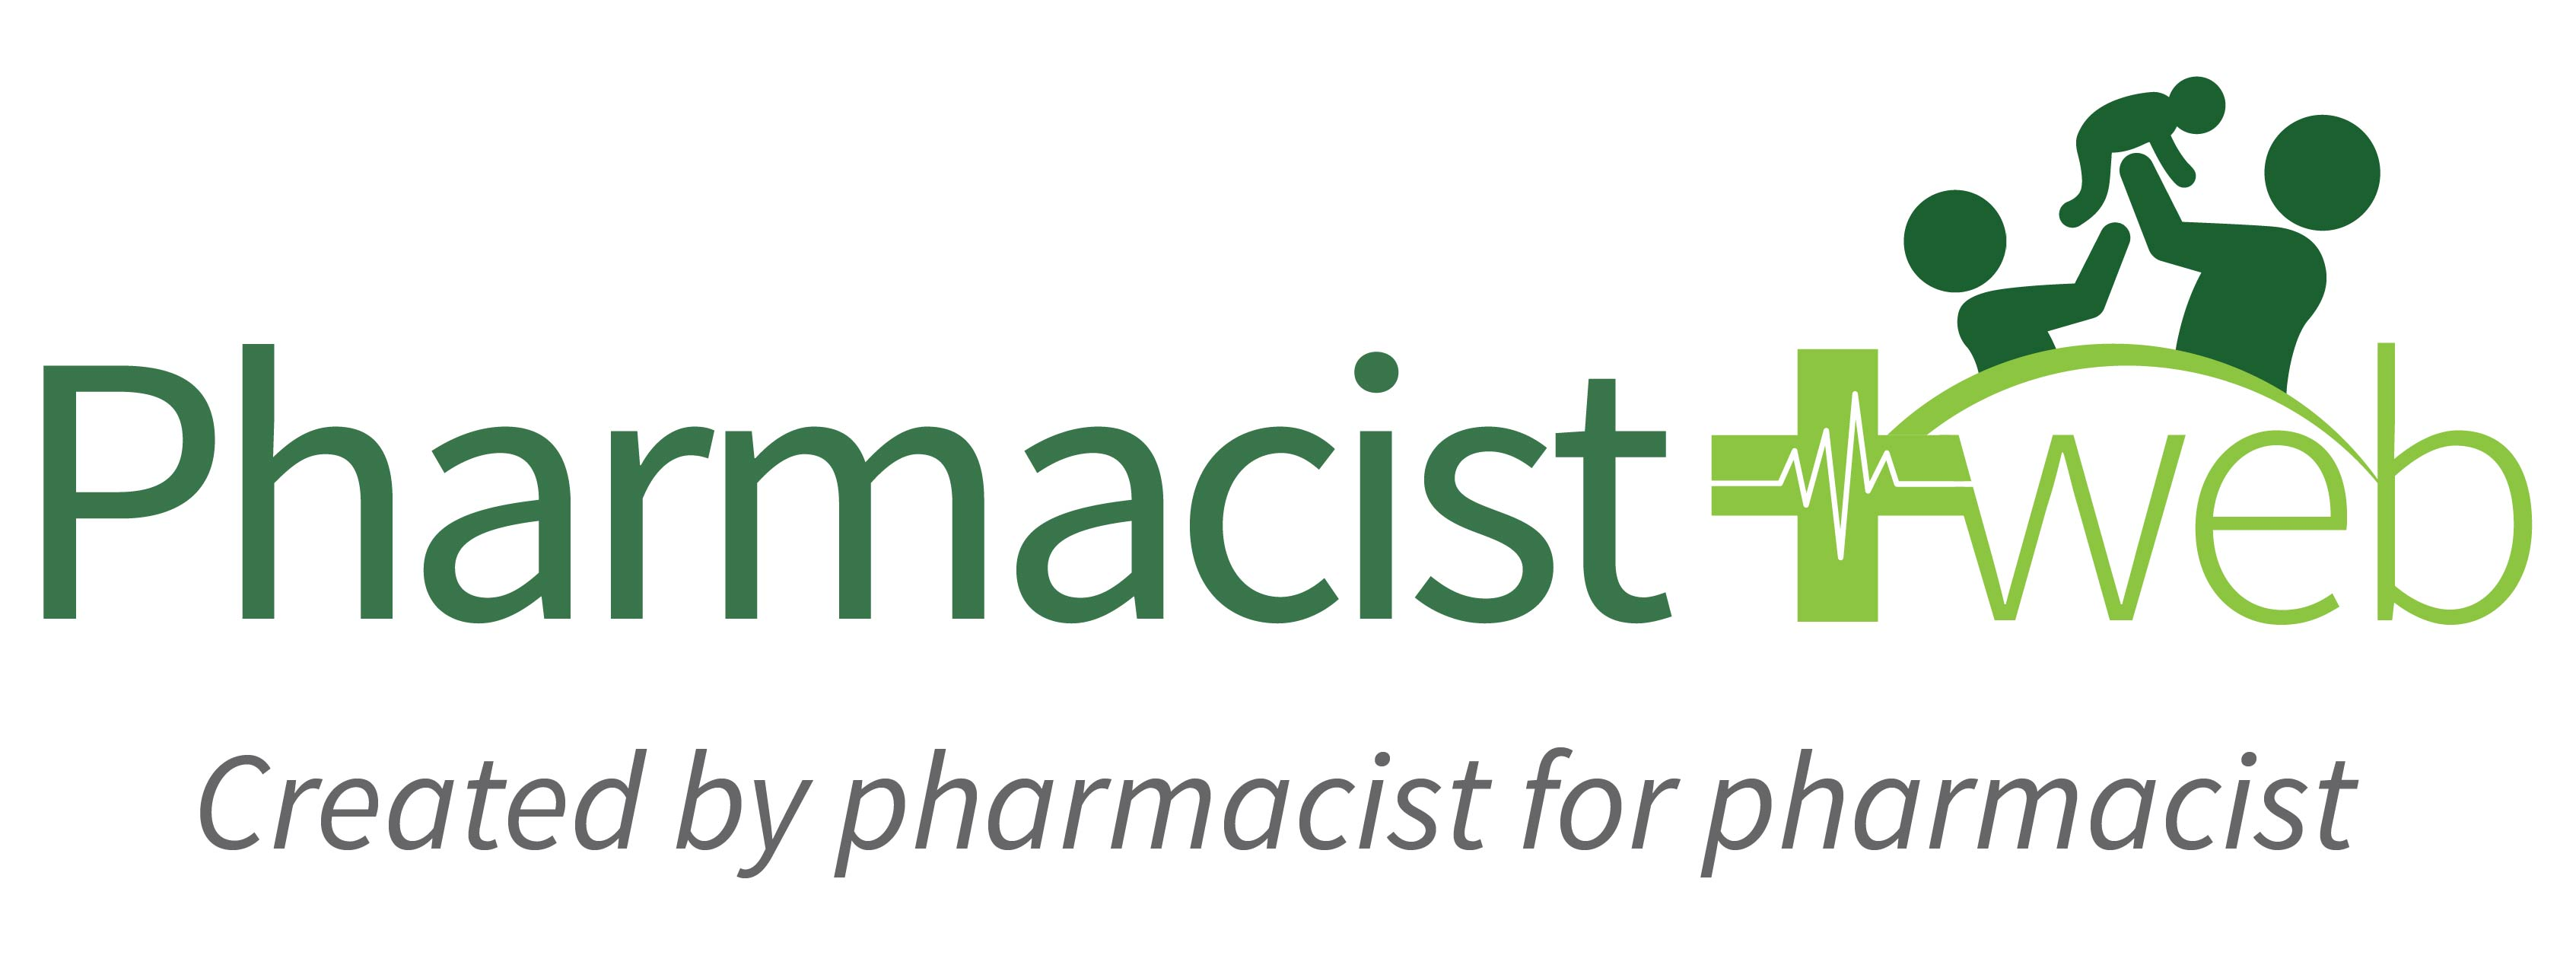 Pharmacist Web